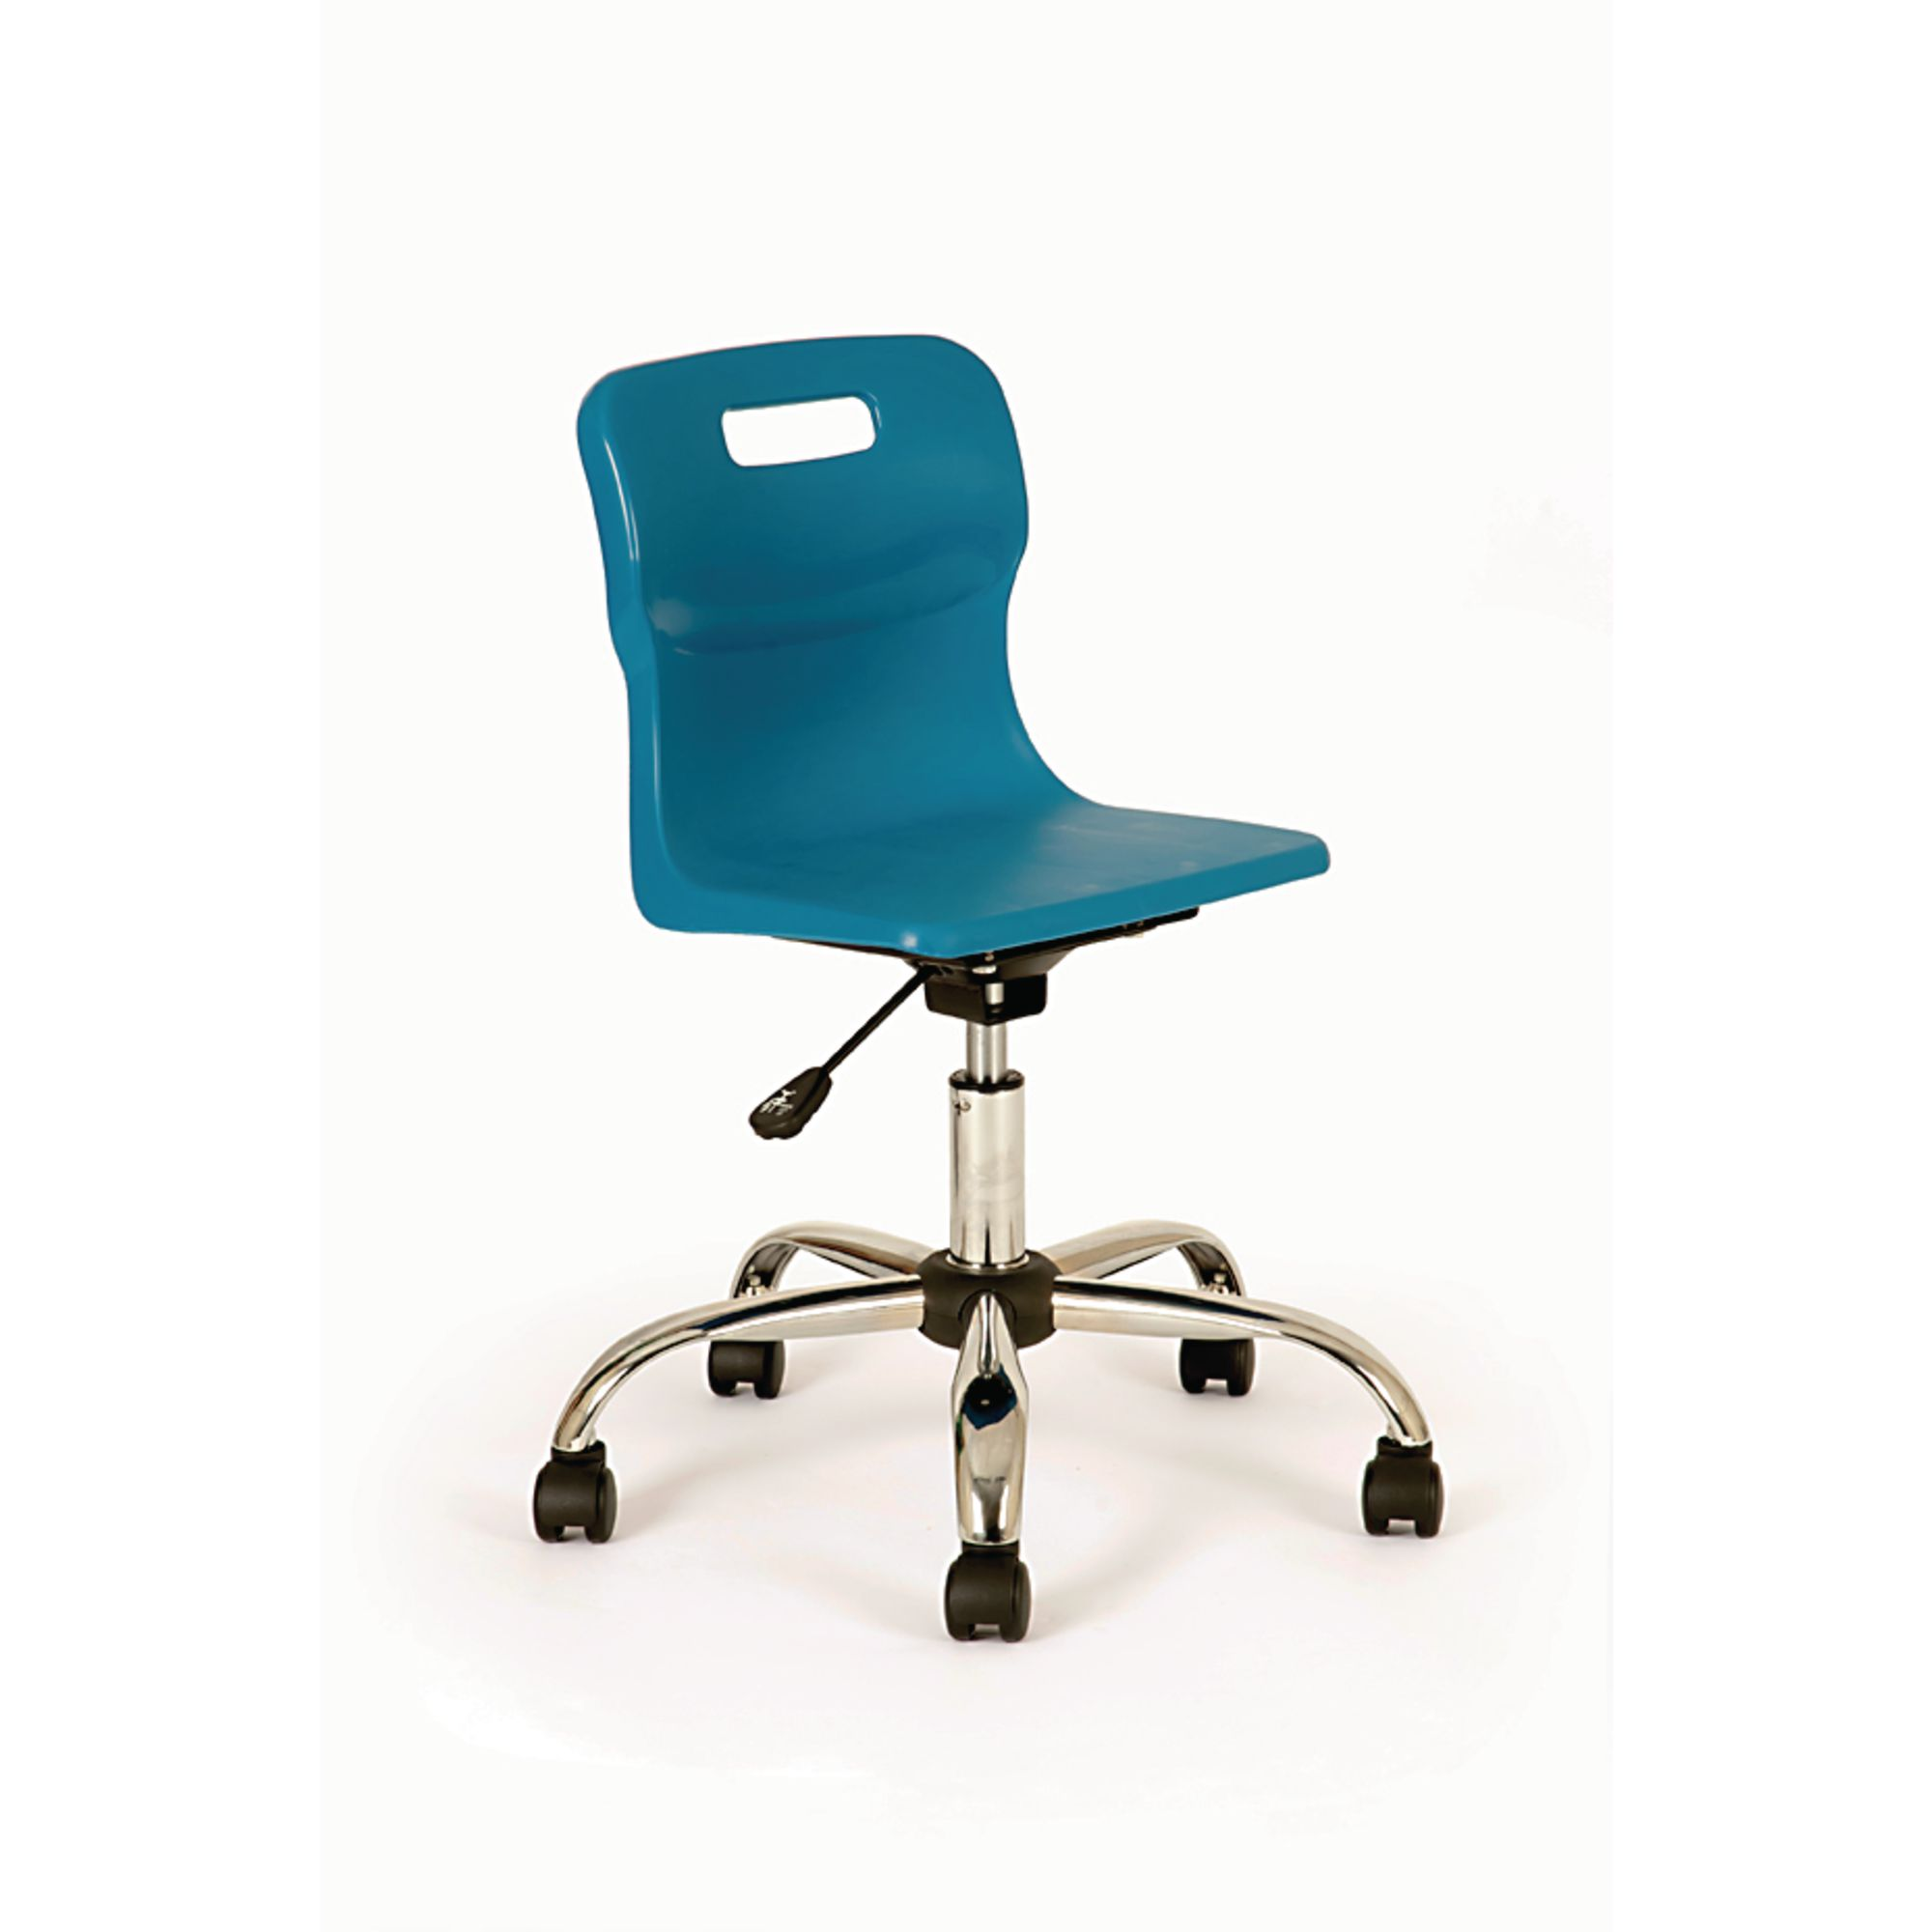 product gls educational supplies rh glsed co uk Aqua Blue Chairs Tufted Desk Chair Pink